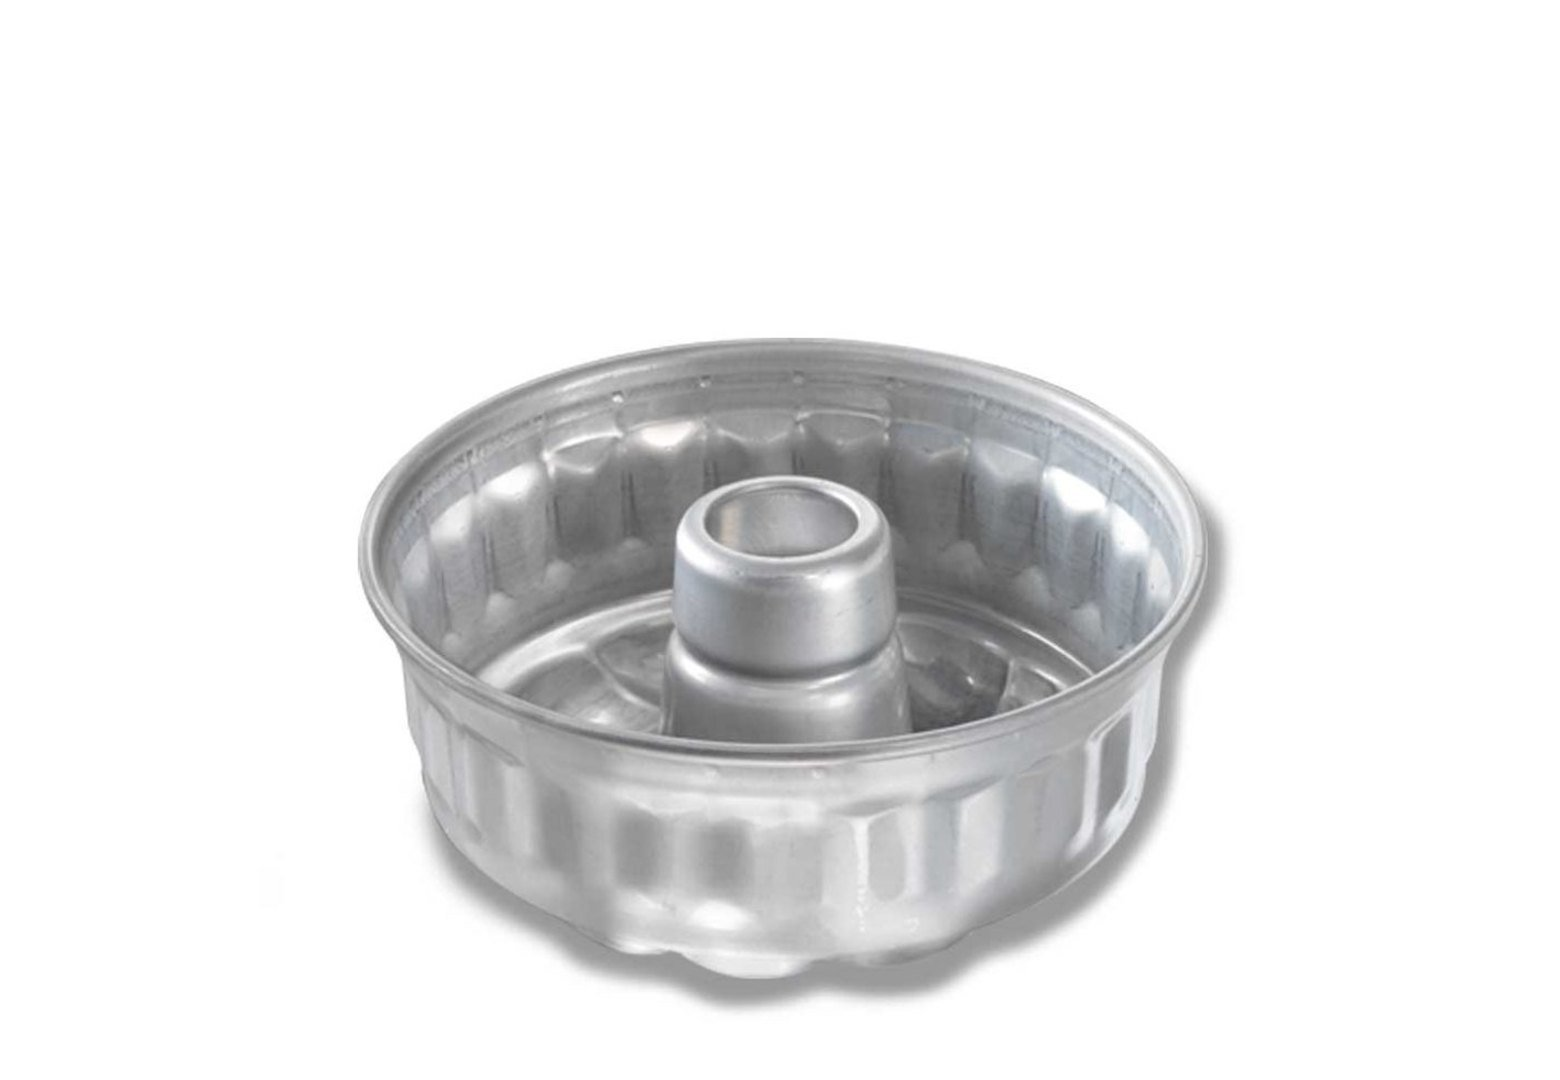 SPECIALTY CAKE PAN